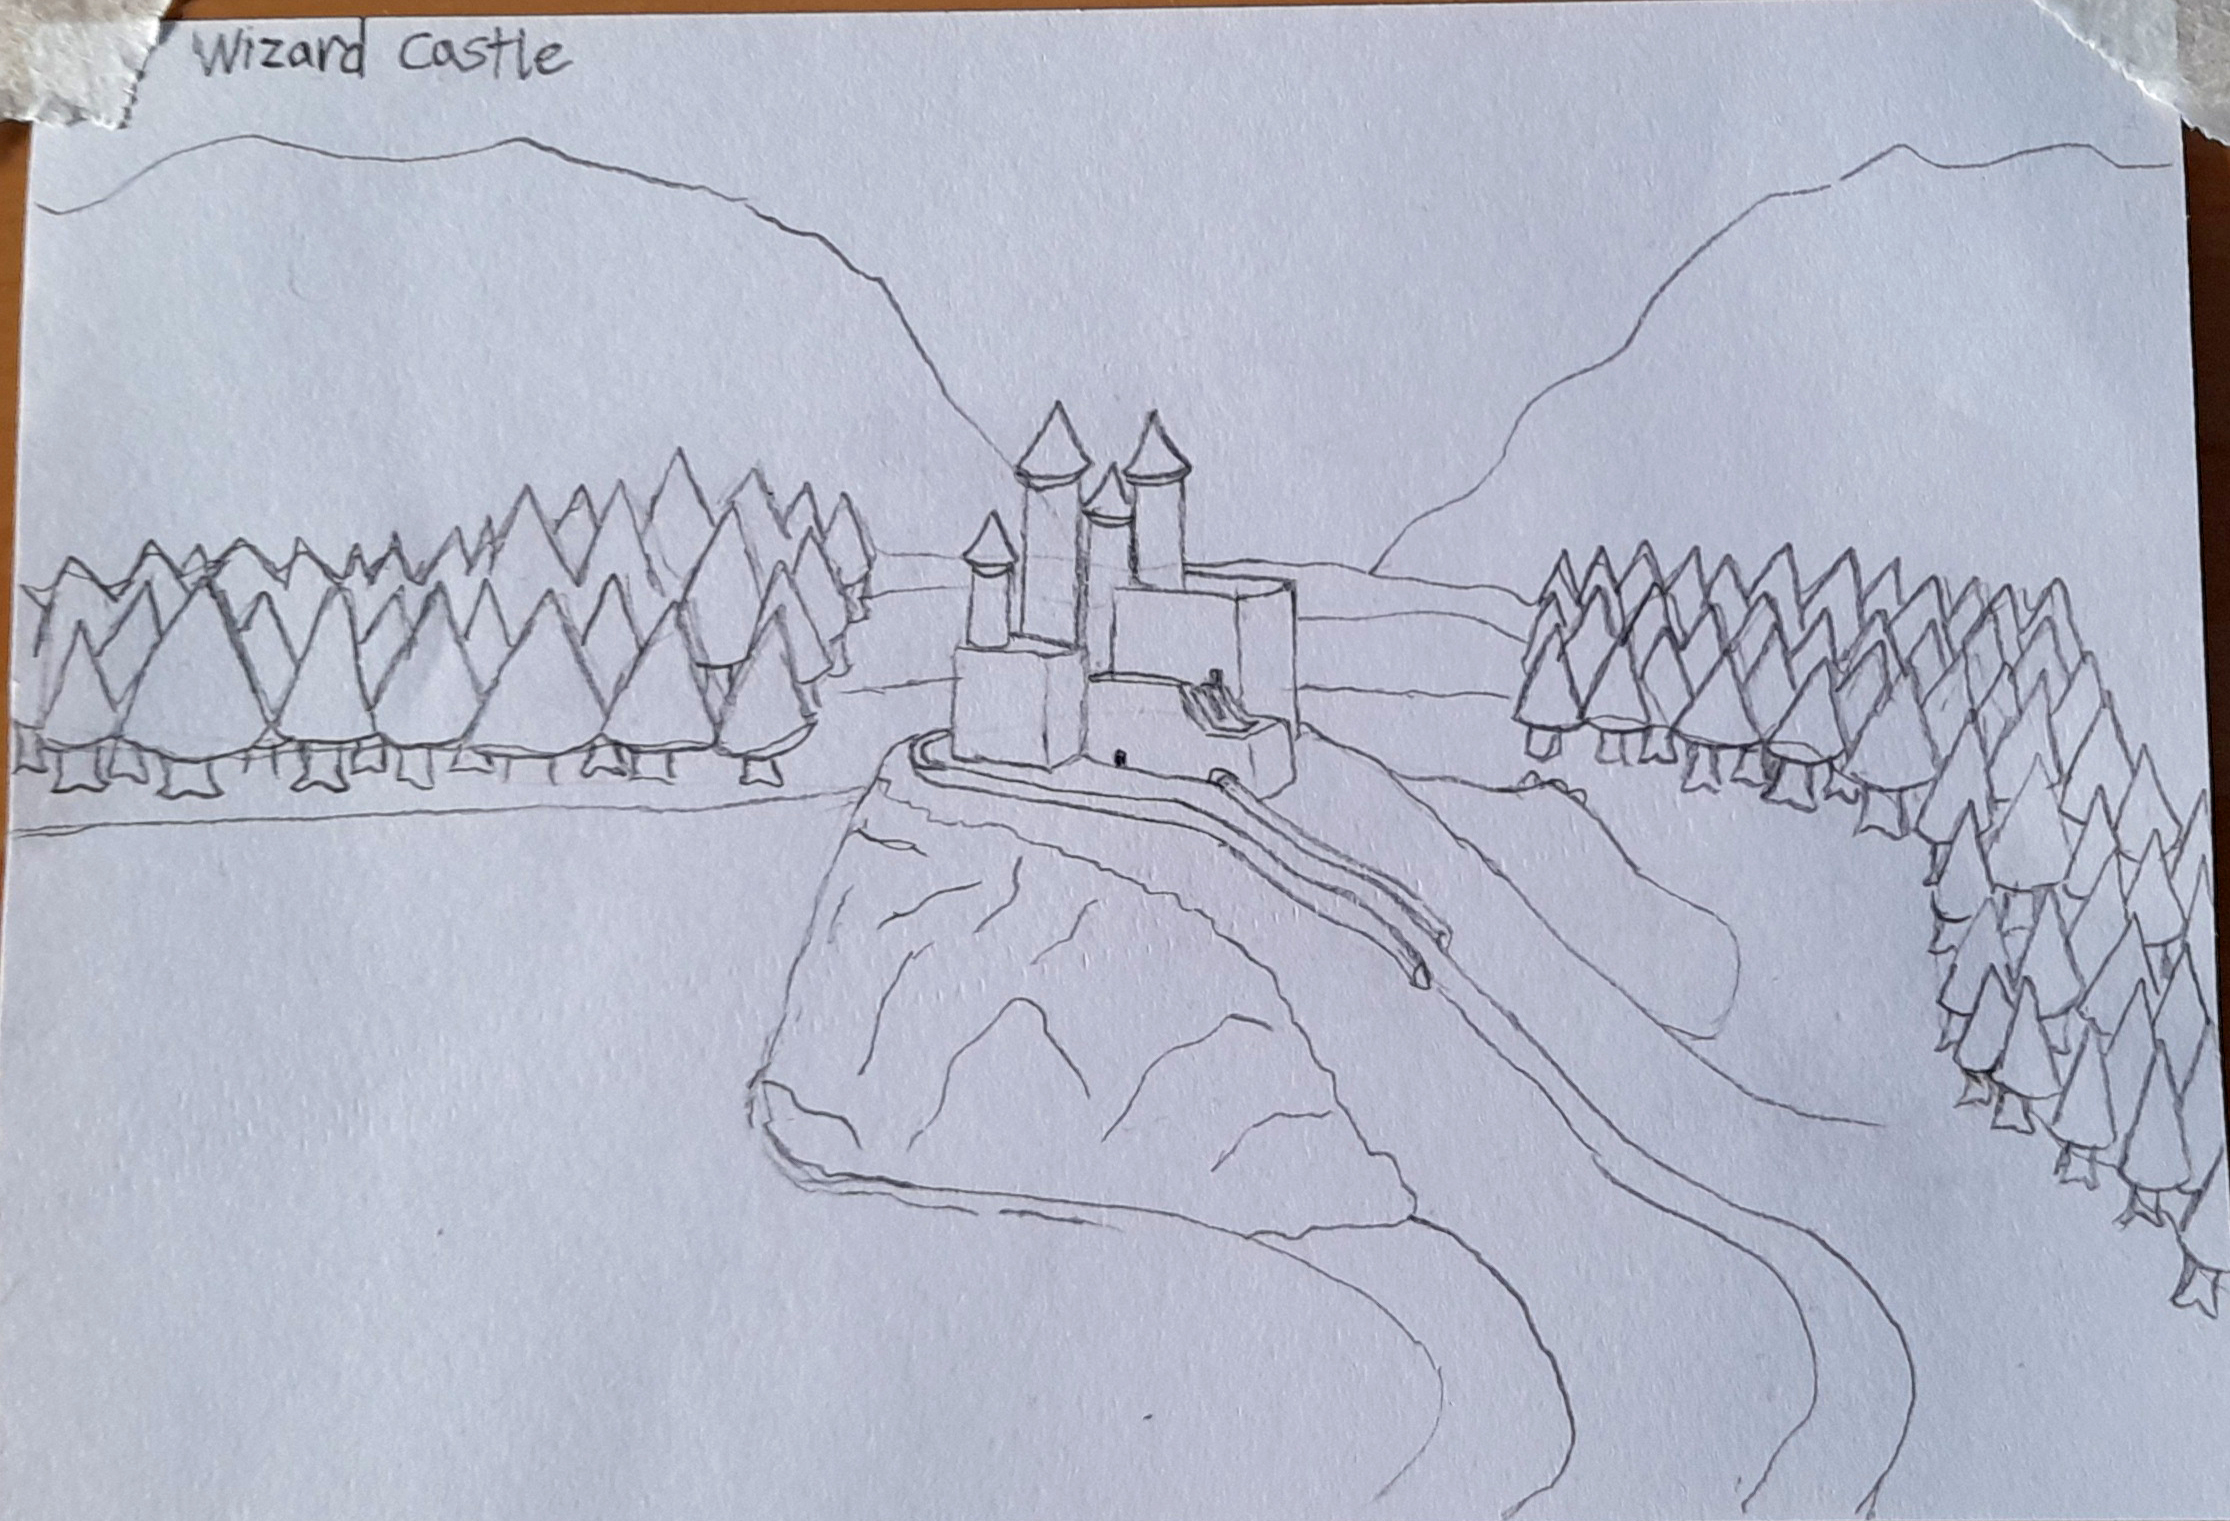 A pencil sketch of a castle between two fir forests.